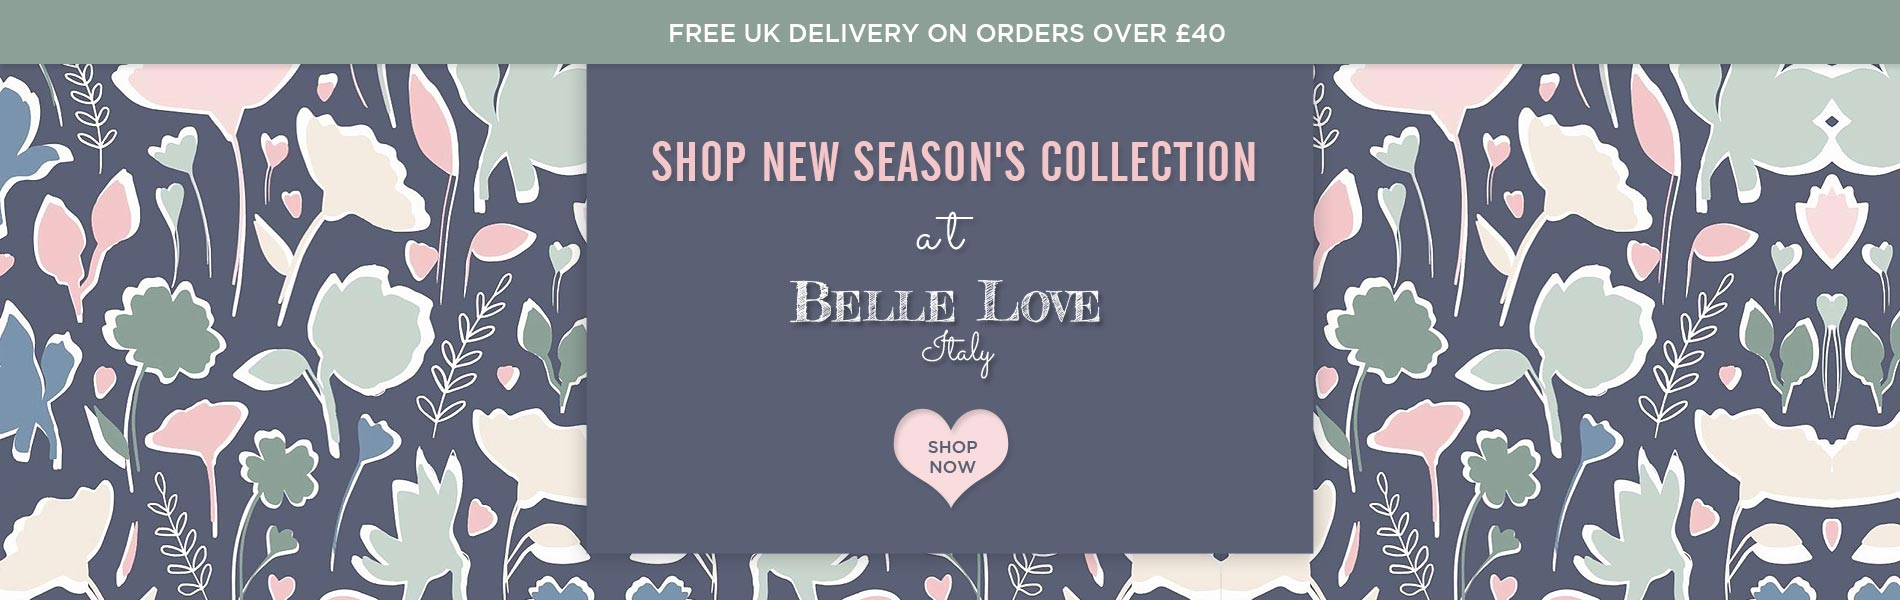 Shop New Season's Collection at Belle Love Italy